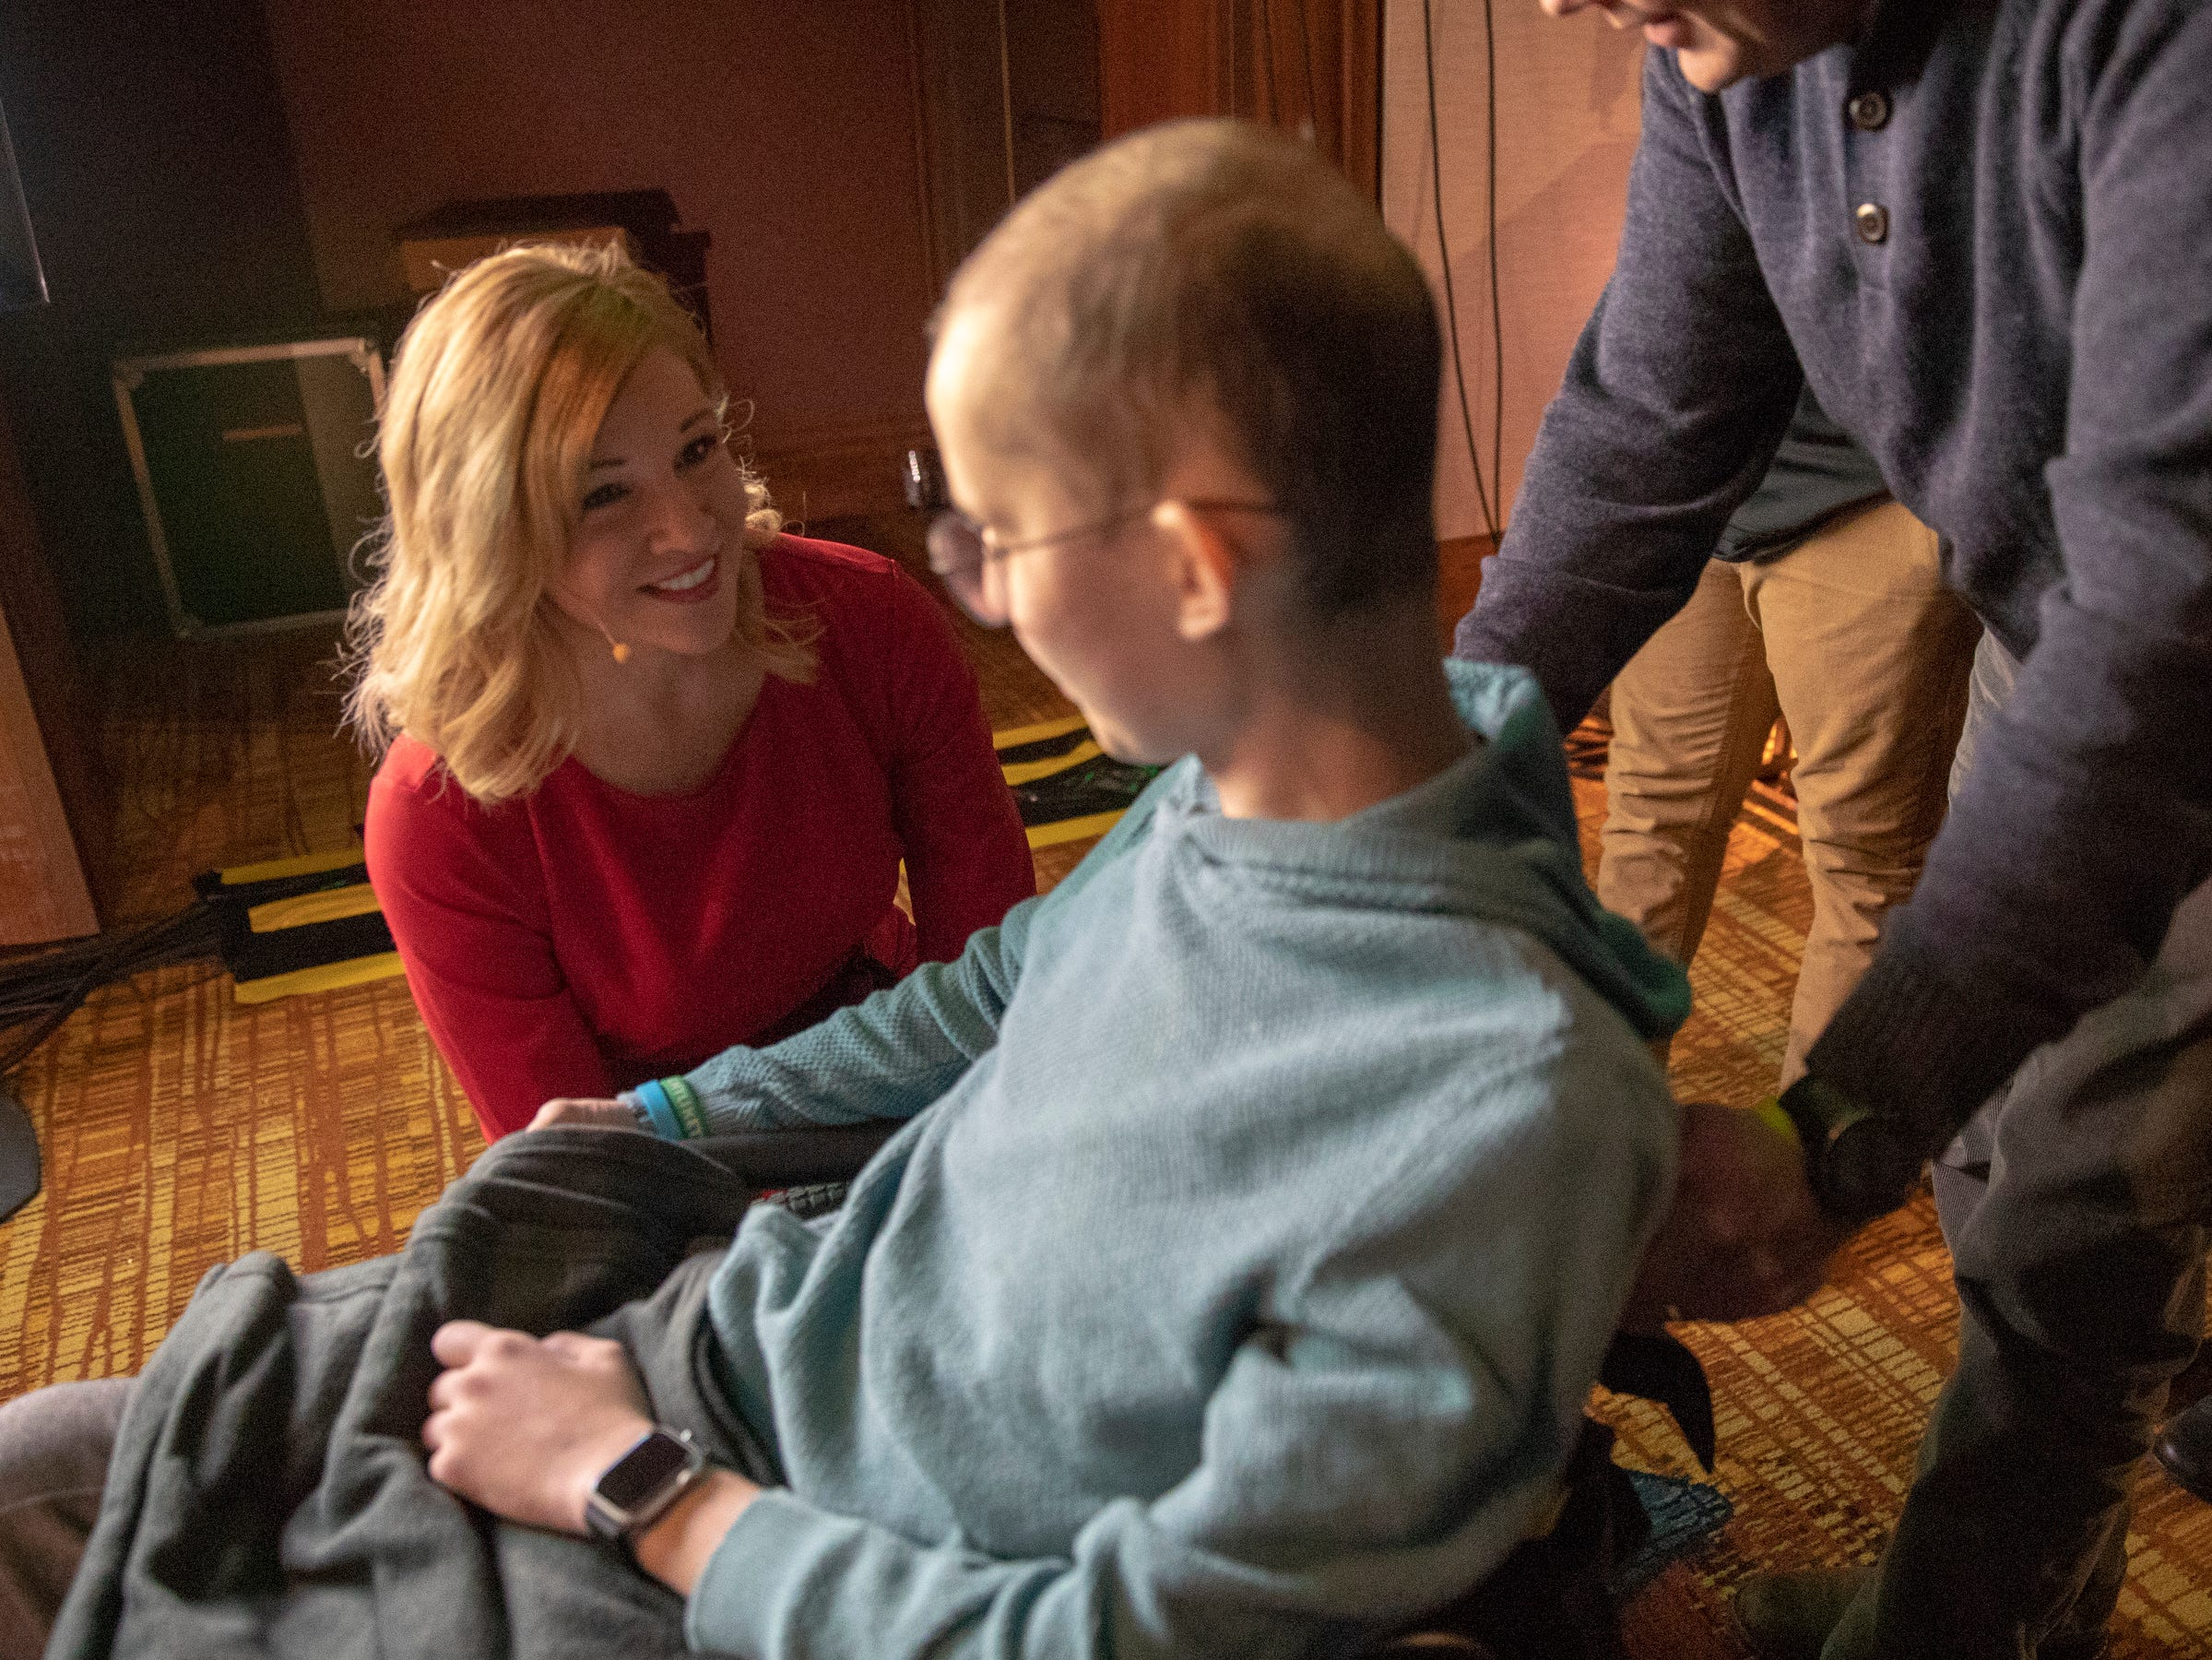 Trisha Shepherd, who is MCing the event, gives encouragement to Tyler Trent at a fundraiser luncheon for Riley Children's Foundation's Be The Hope Now campaign, Indianapolis, Wednesday, Nov. 28, 2018. Trent, who has the rare bone cancer osteosarcoma, is in hospice care, and was given the Sagamore of the Wabash award, given to distinguished Hoosiers.